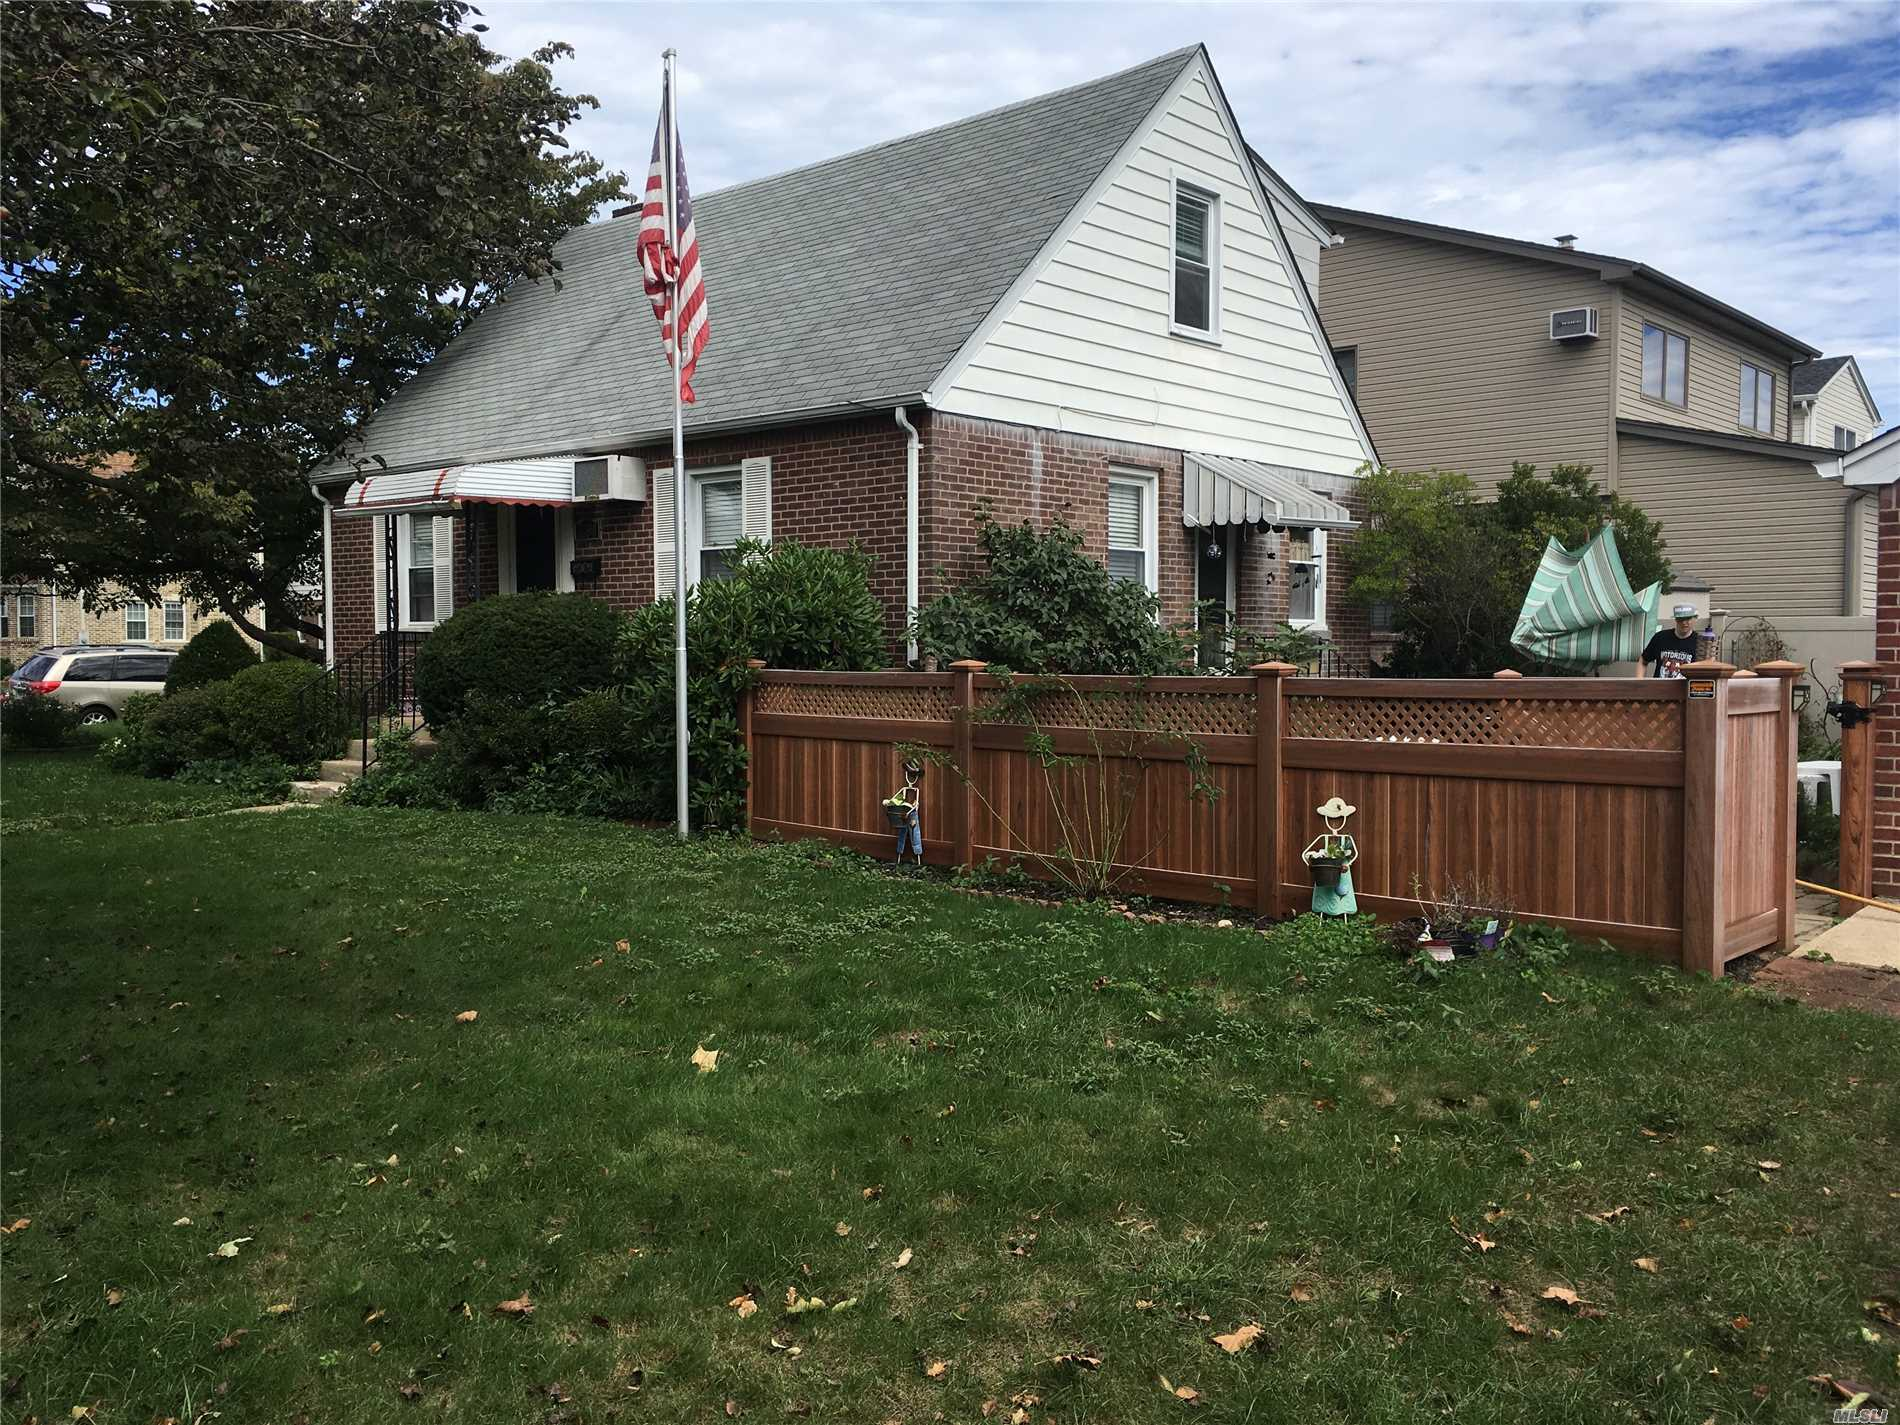 Near All! Yard Fenced, Updated Roof, Heating, Electrical. Great Neck Schools. Rear Dormer. Needs Tlc!